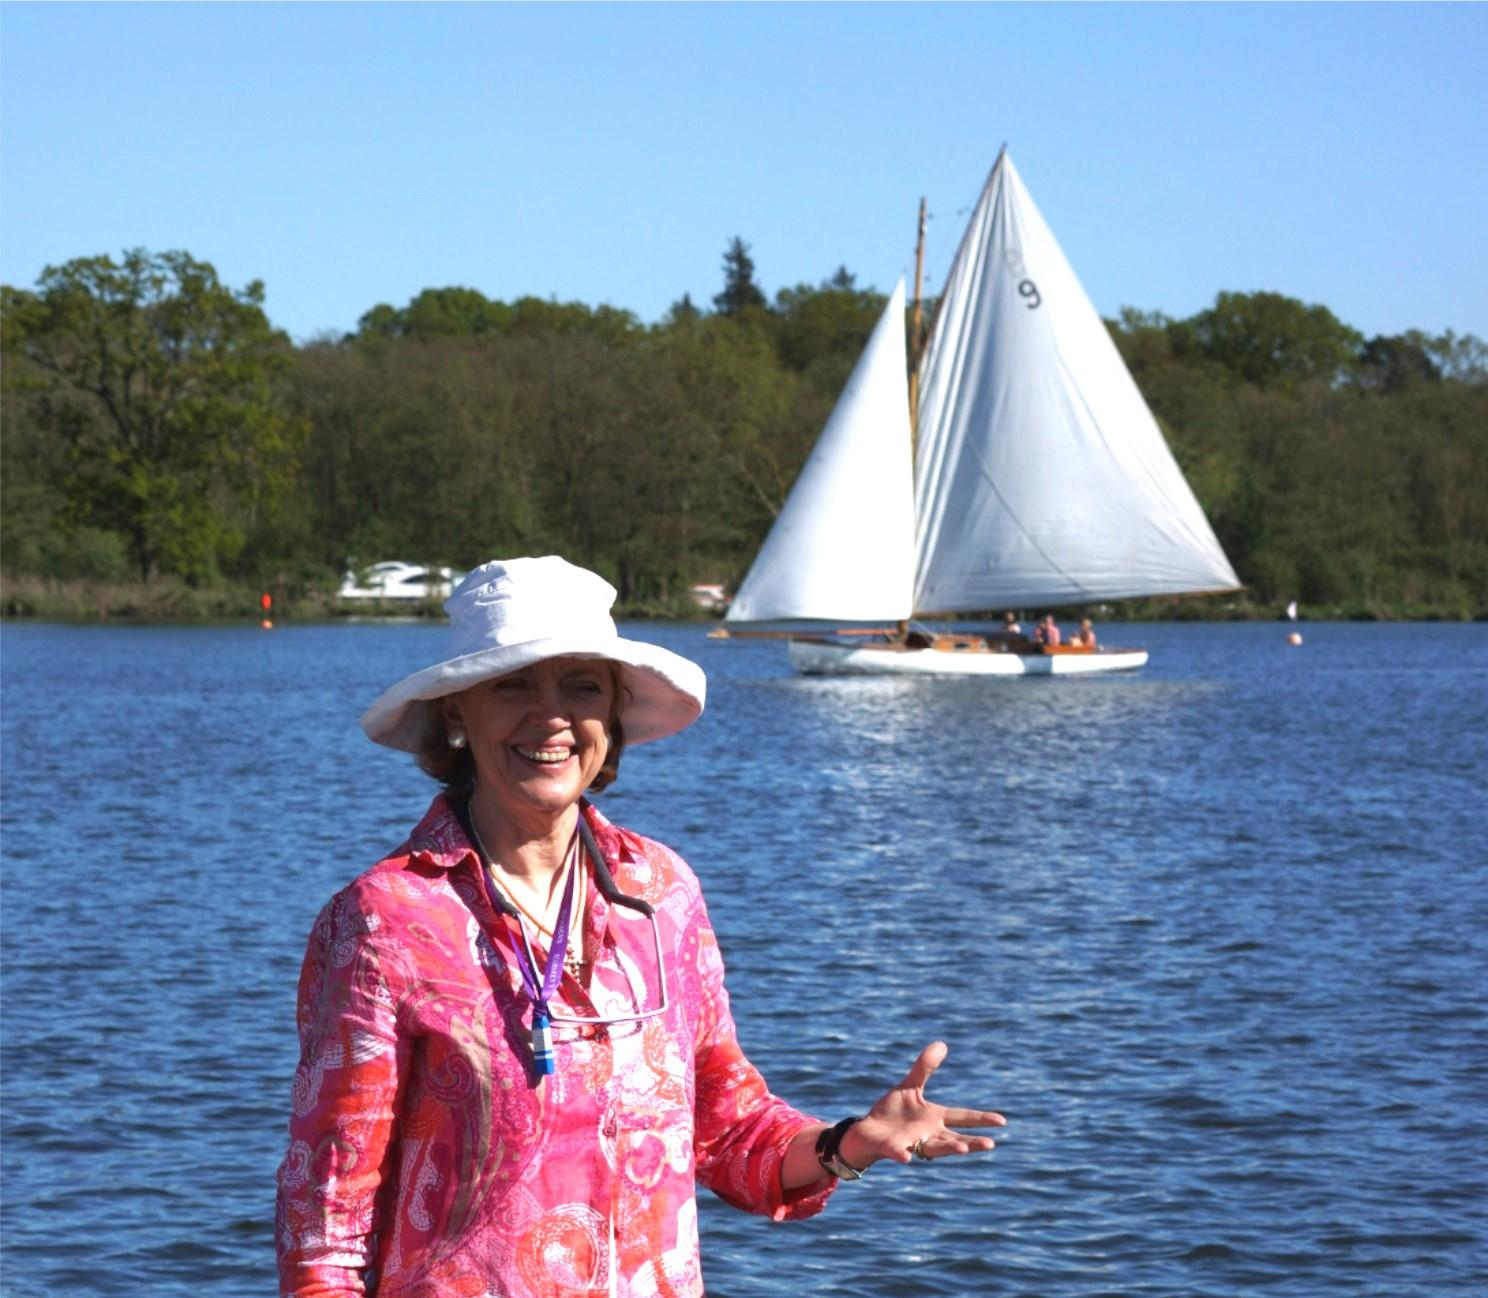 Sophie Neville with the yacht 'Goldfish'